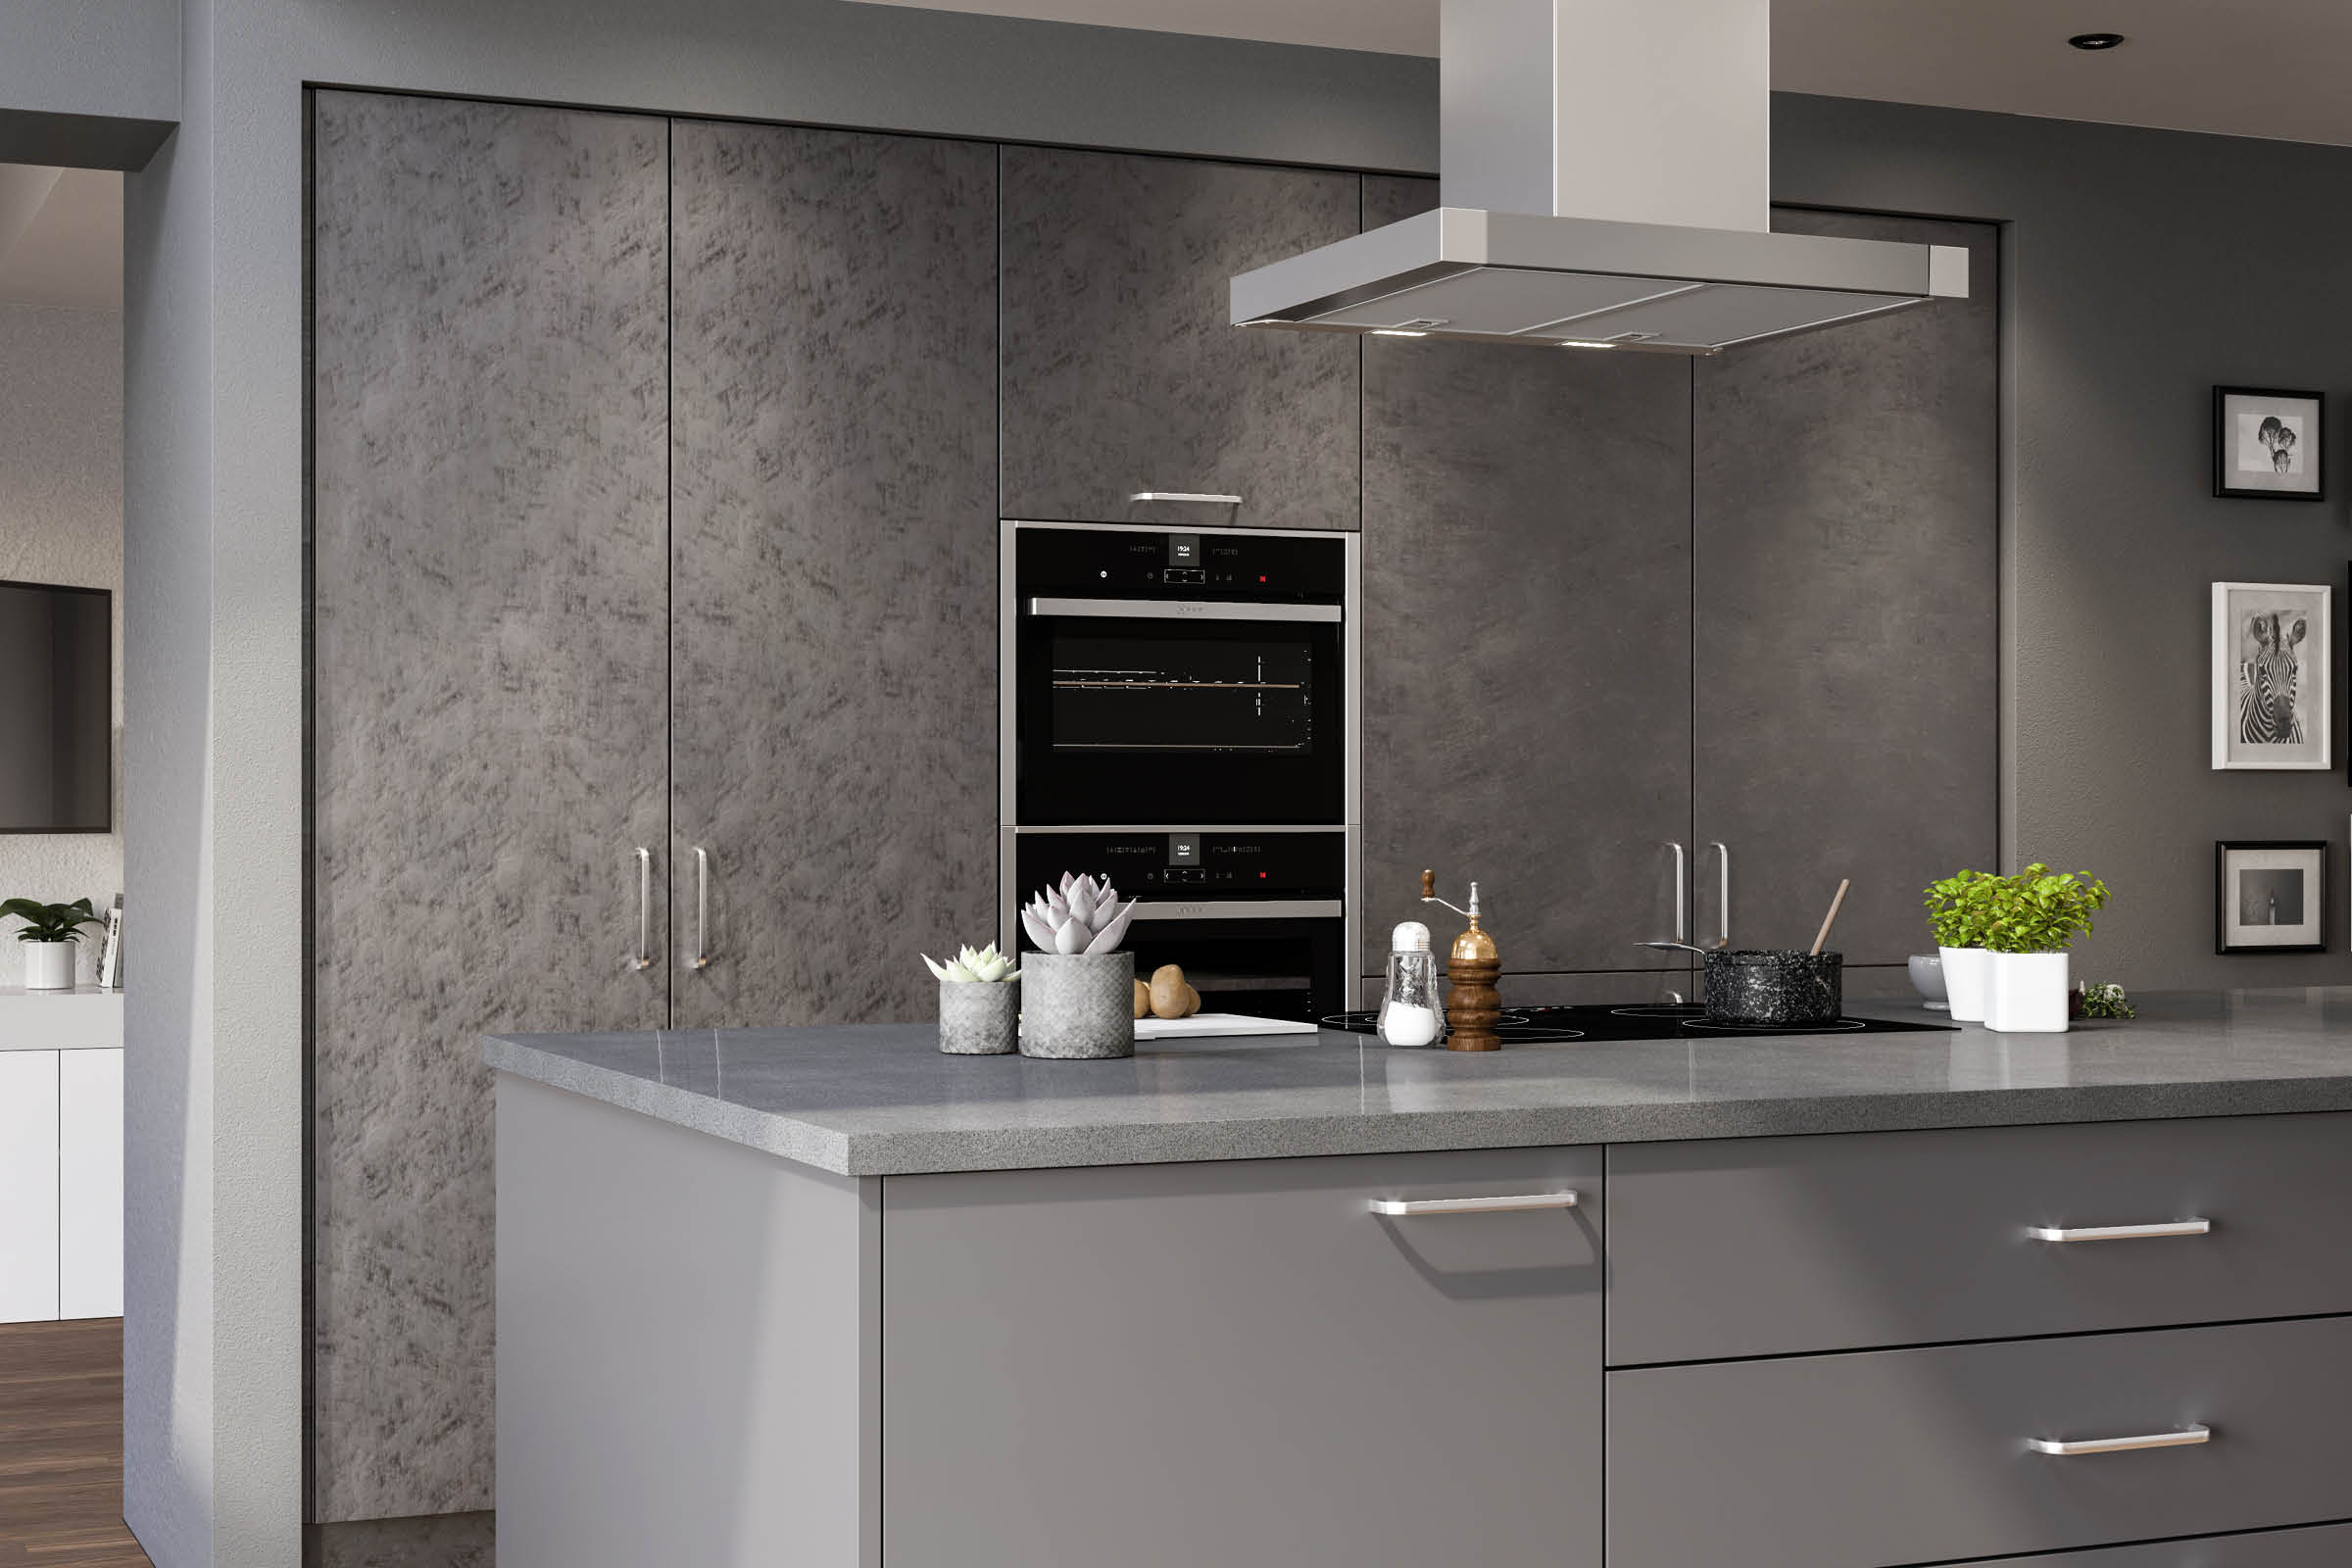 Choosing handles for your kitchen